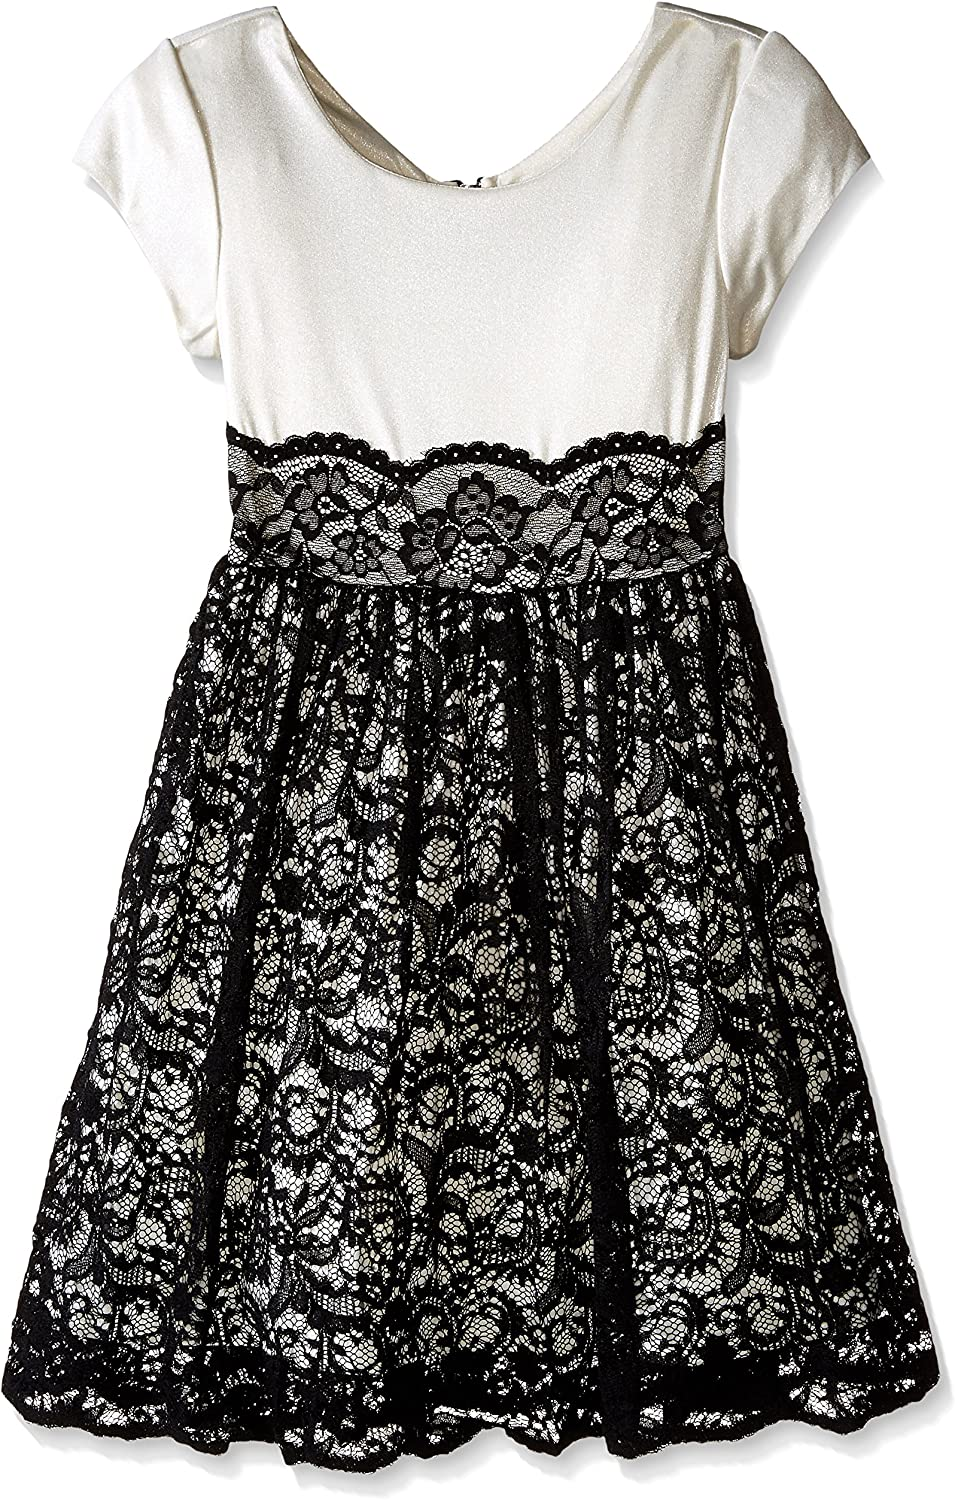 Bonnie Jean Girls' Big Cap Sleeve Dress with Lace Overlay Skirt